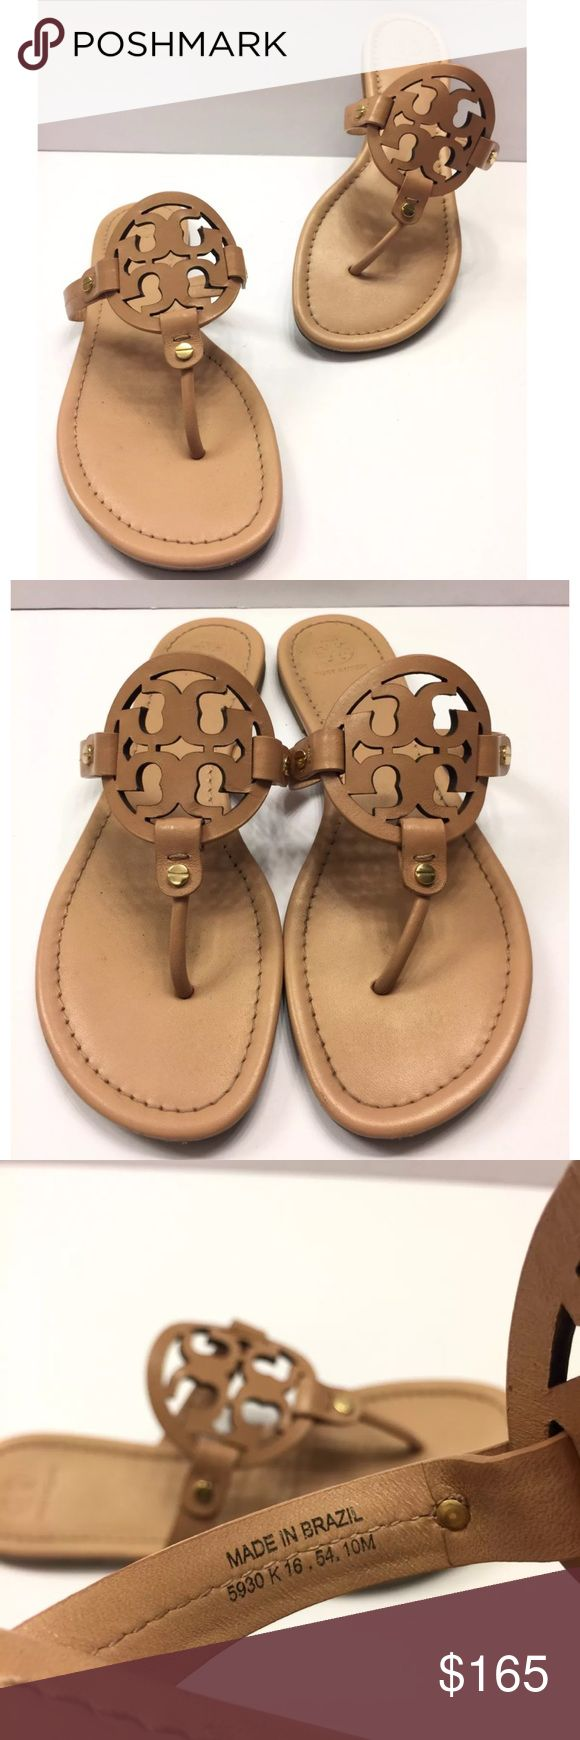 Tory Burch 'Miller' Flip Flop Makeup Leather Store Display or Return Item from Nordstrom's.  Good Condition with minor scuff on Front of the sandal , Nothing mayor that will take away the Classy look. Sole Protector added by Professional Cobbler,  A must have style. Please Check All Pictures, I will be more than happy to answer any Questions.  NO SHOE BOX OR DUSTBAG A foam-cushioned footbed makes it a comfortable choice for long summertime days. Leather or synthetic upper/leather…